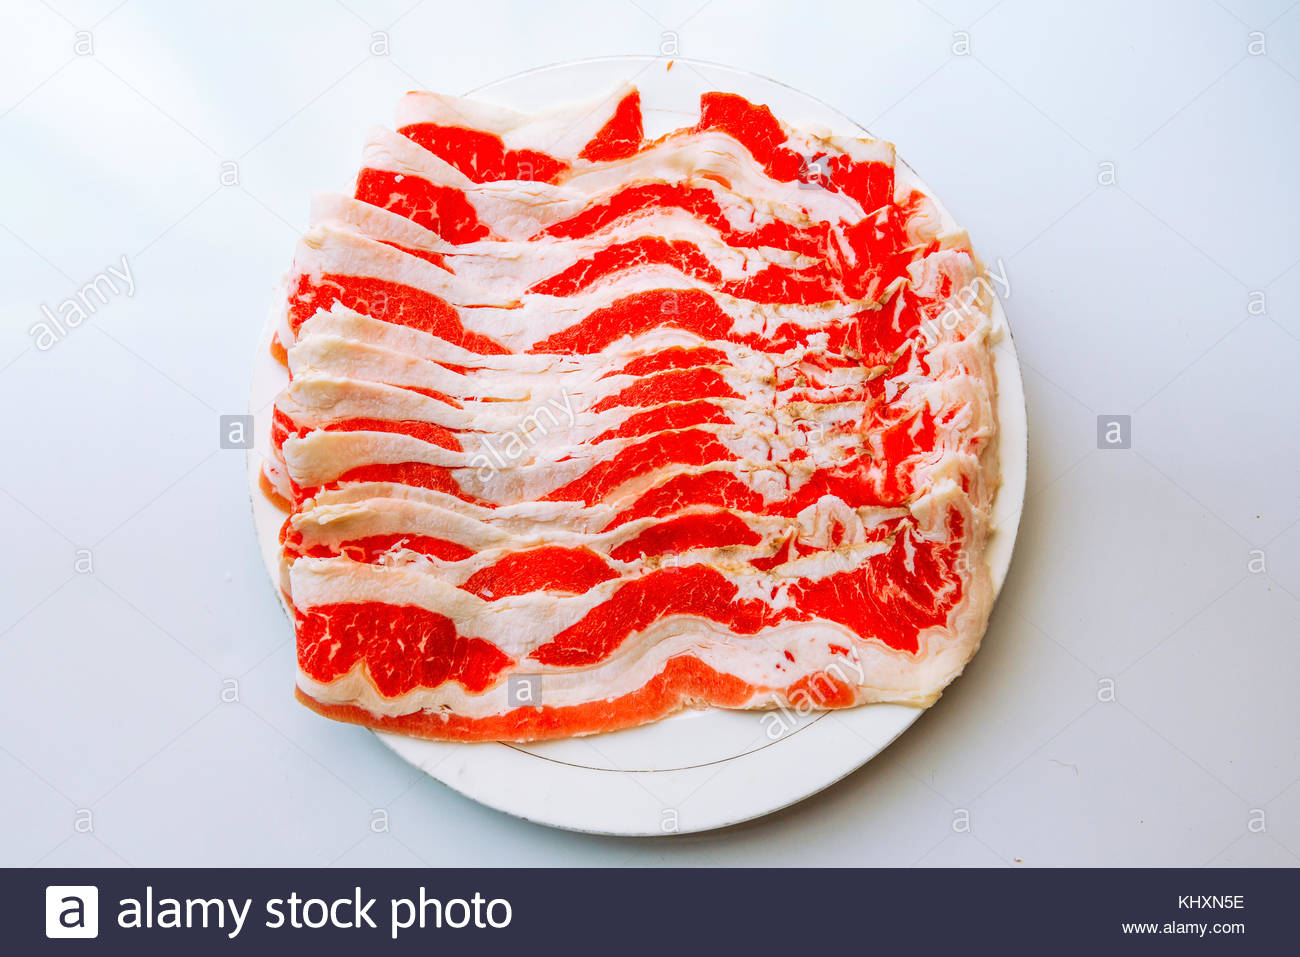 Mutton slices - Stock Image